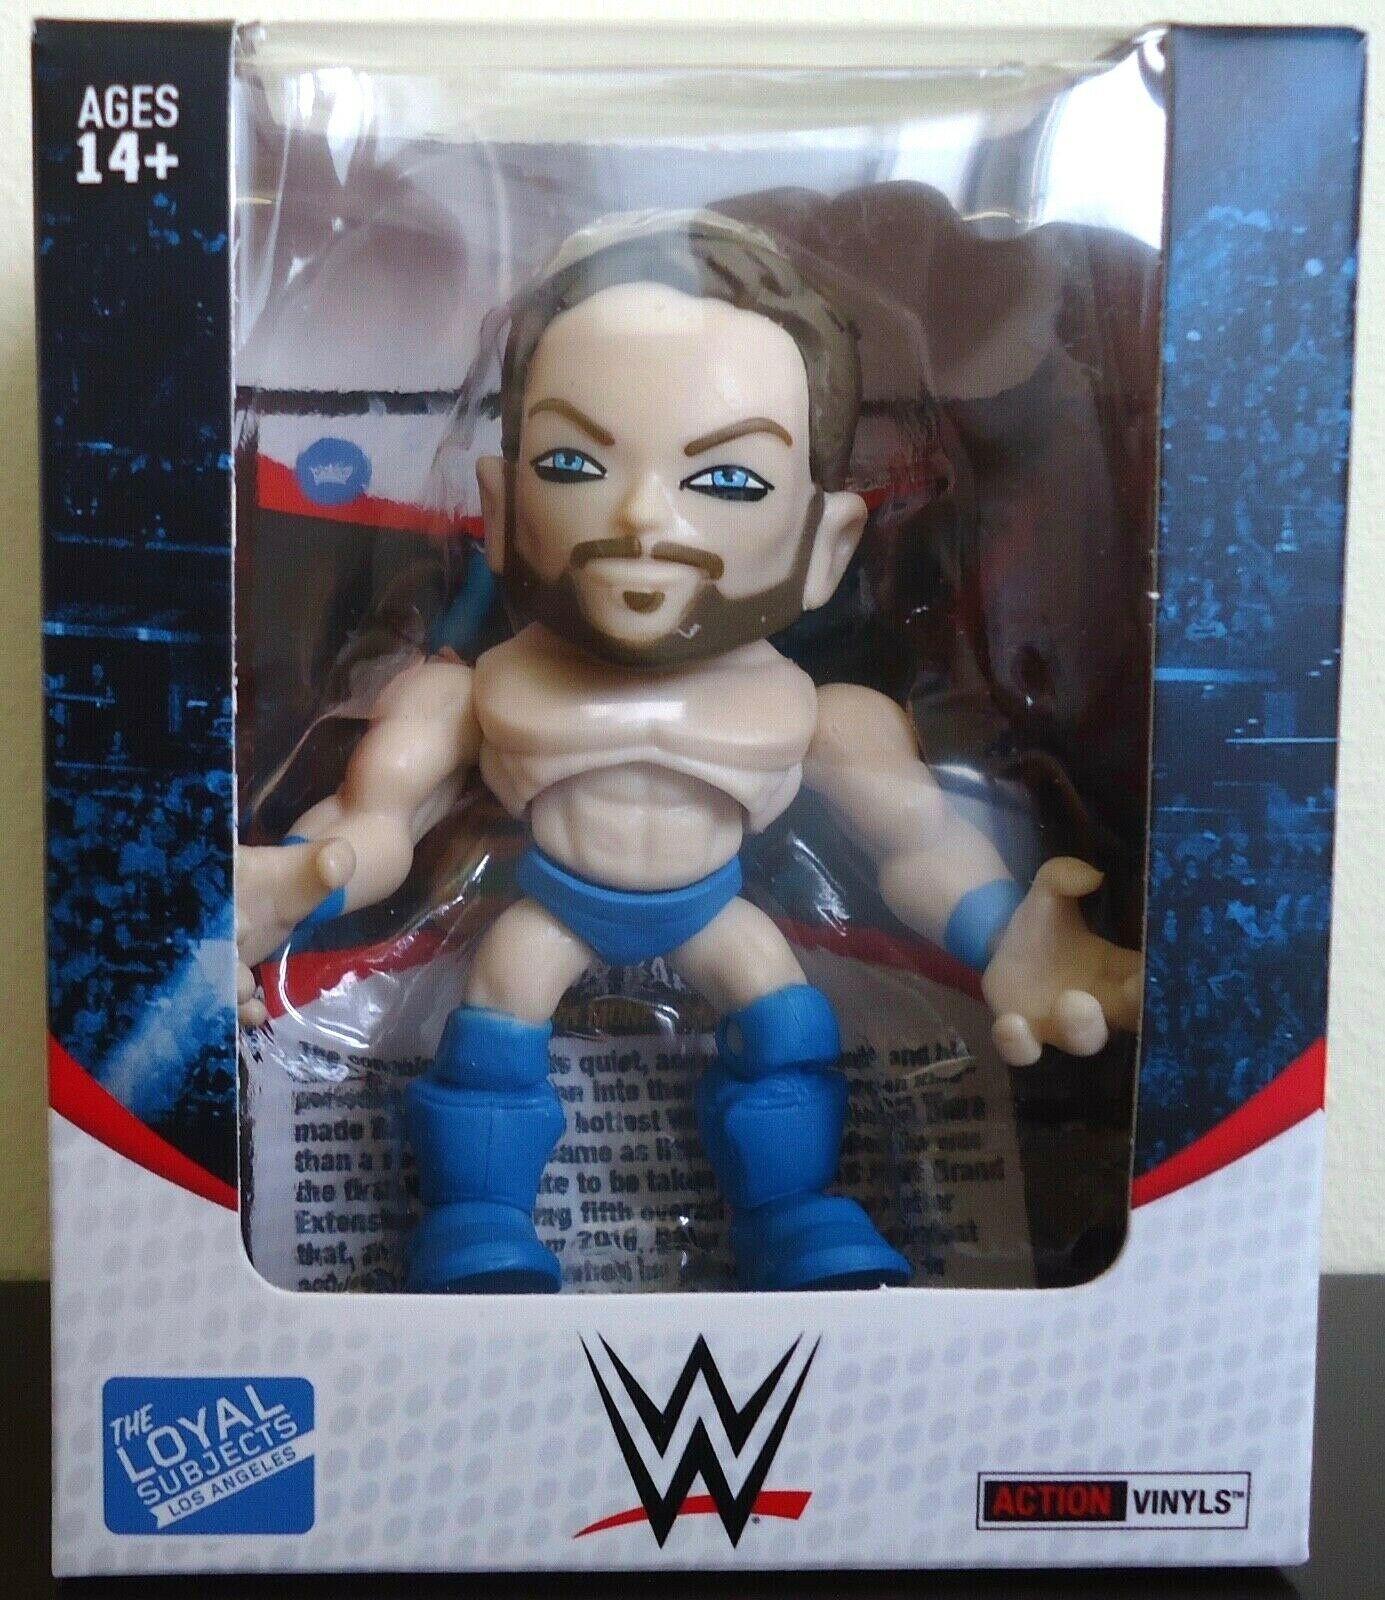 WWE The Loyal Subjects Action Vinyls FINN FINN FINN BALOR W MB 1 96 blu SHORTS RARE ea6f11